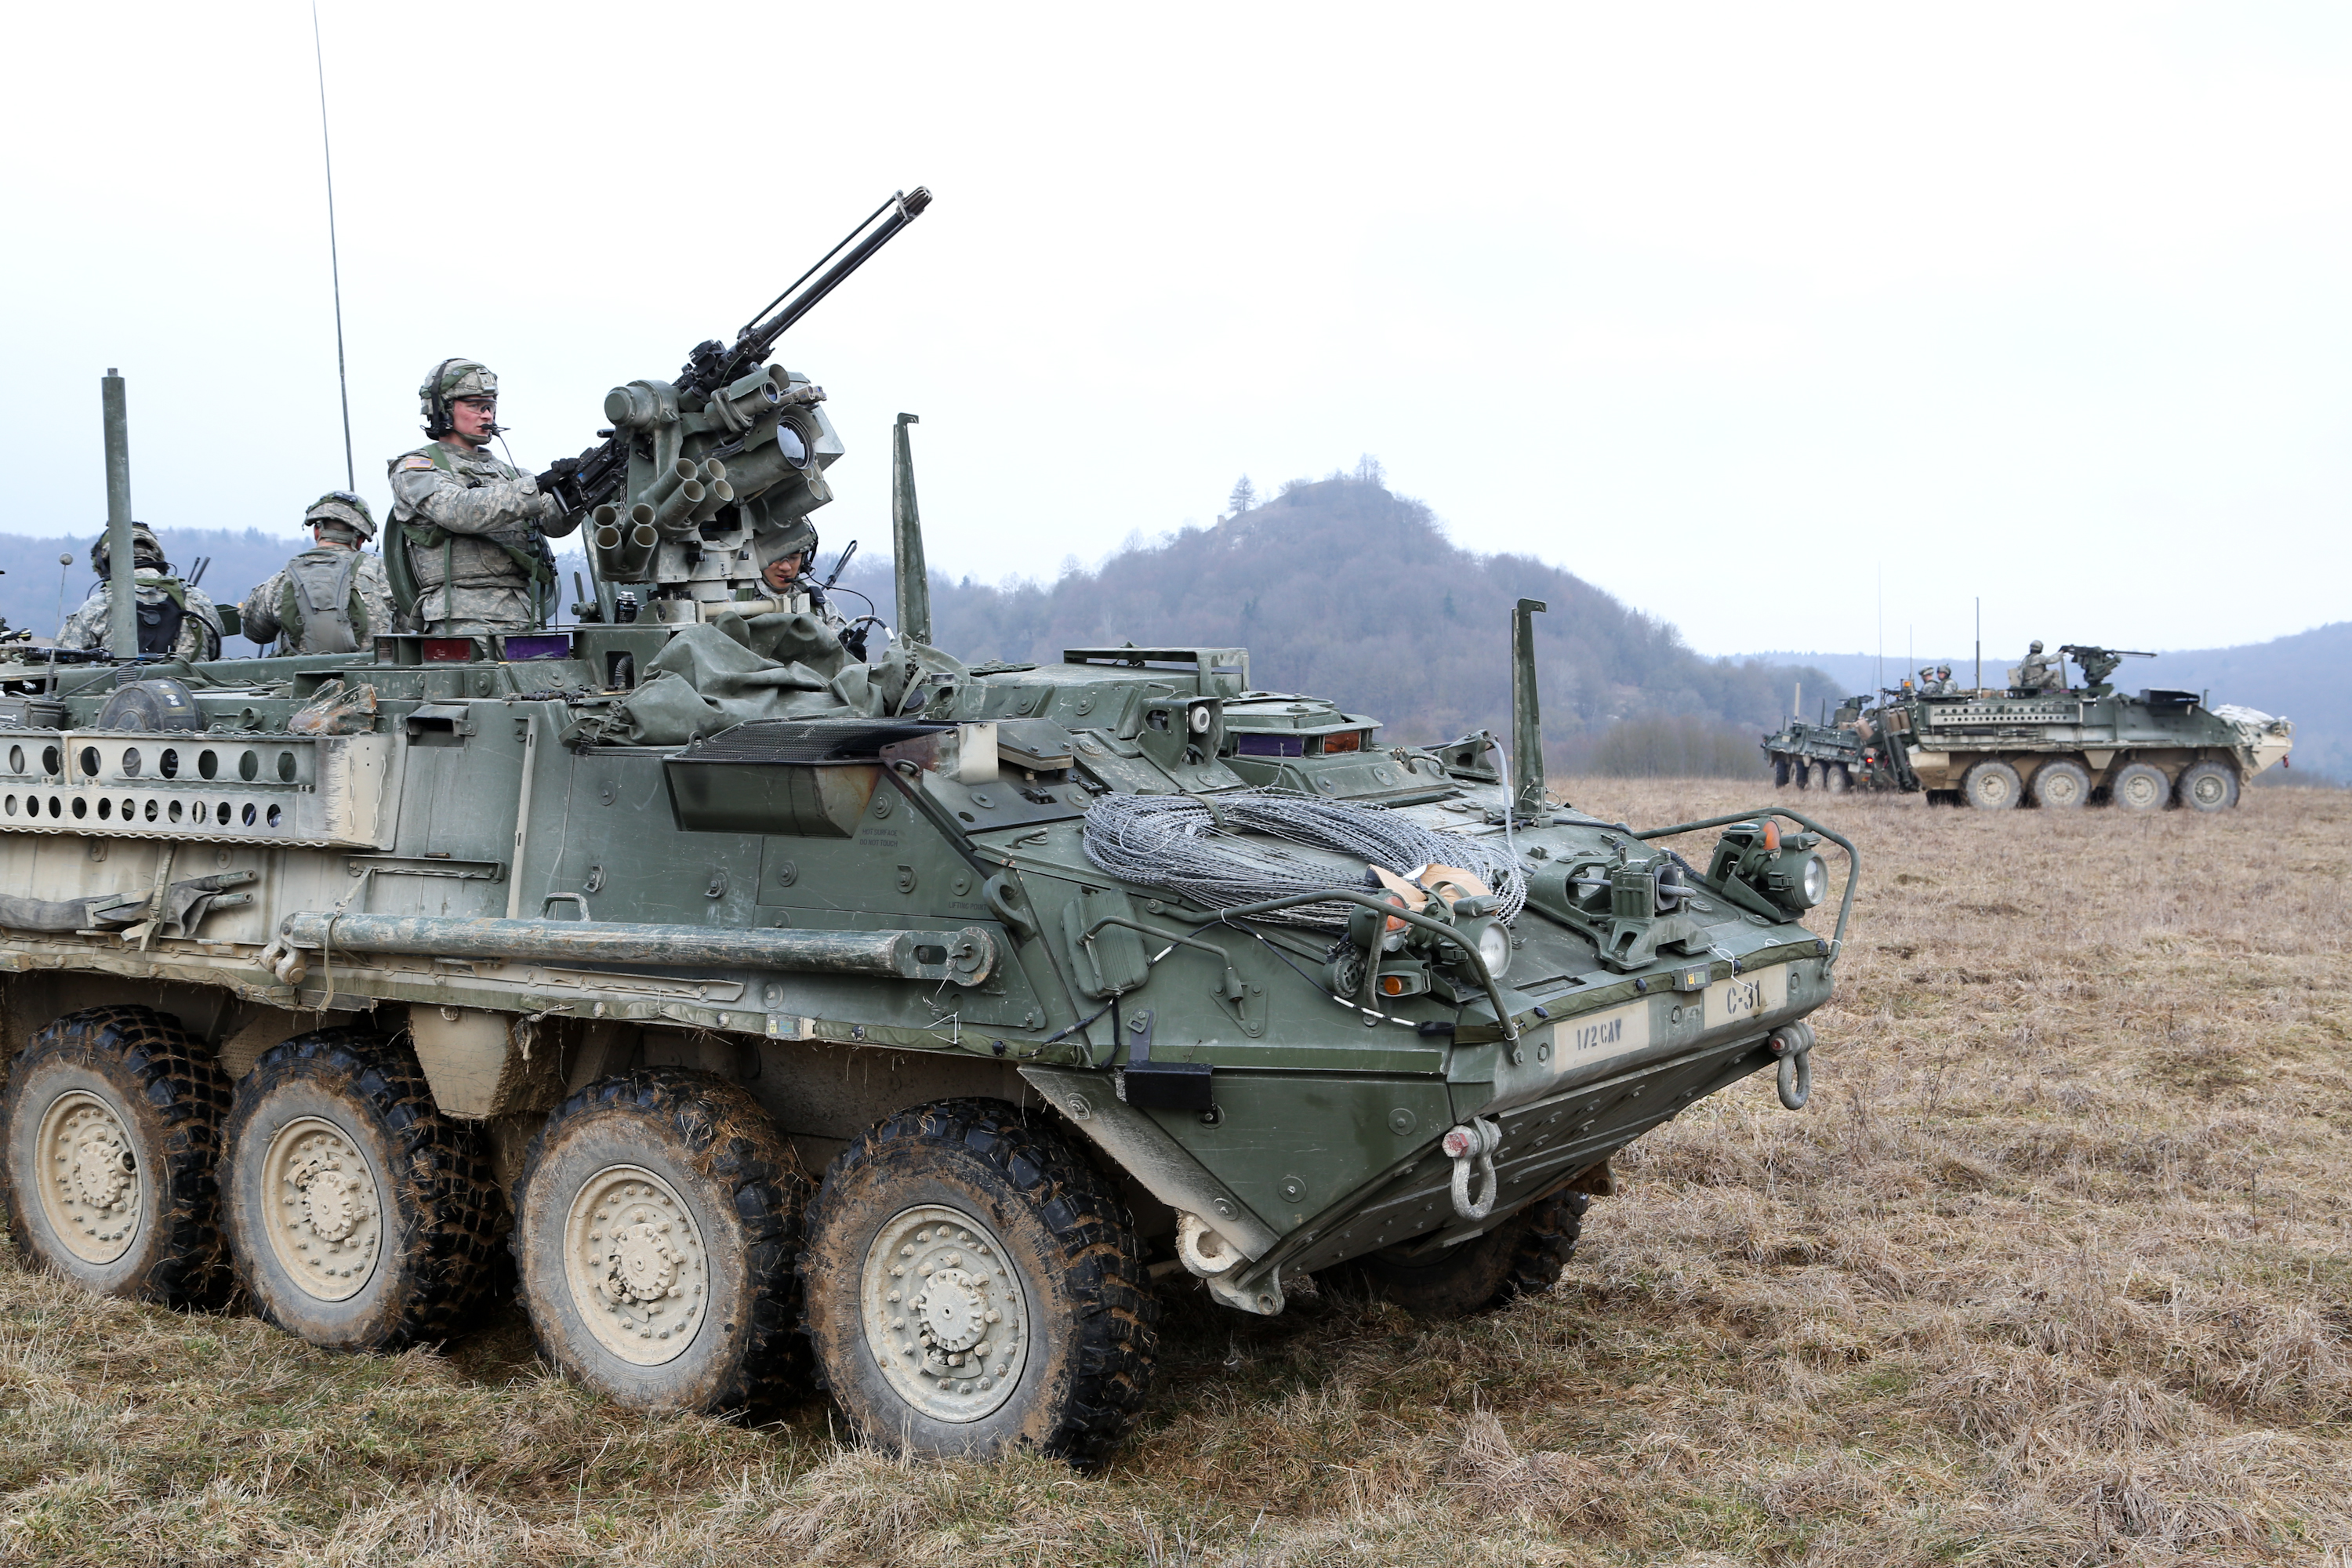 Security in stryker armored vehicles during a mission rehearsal